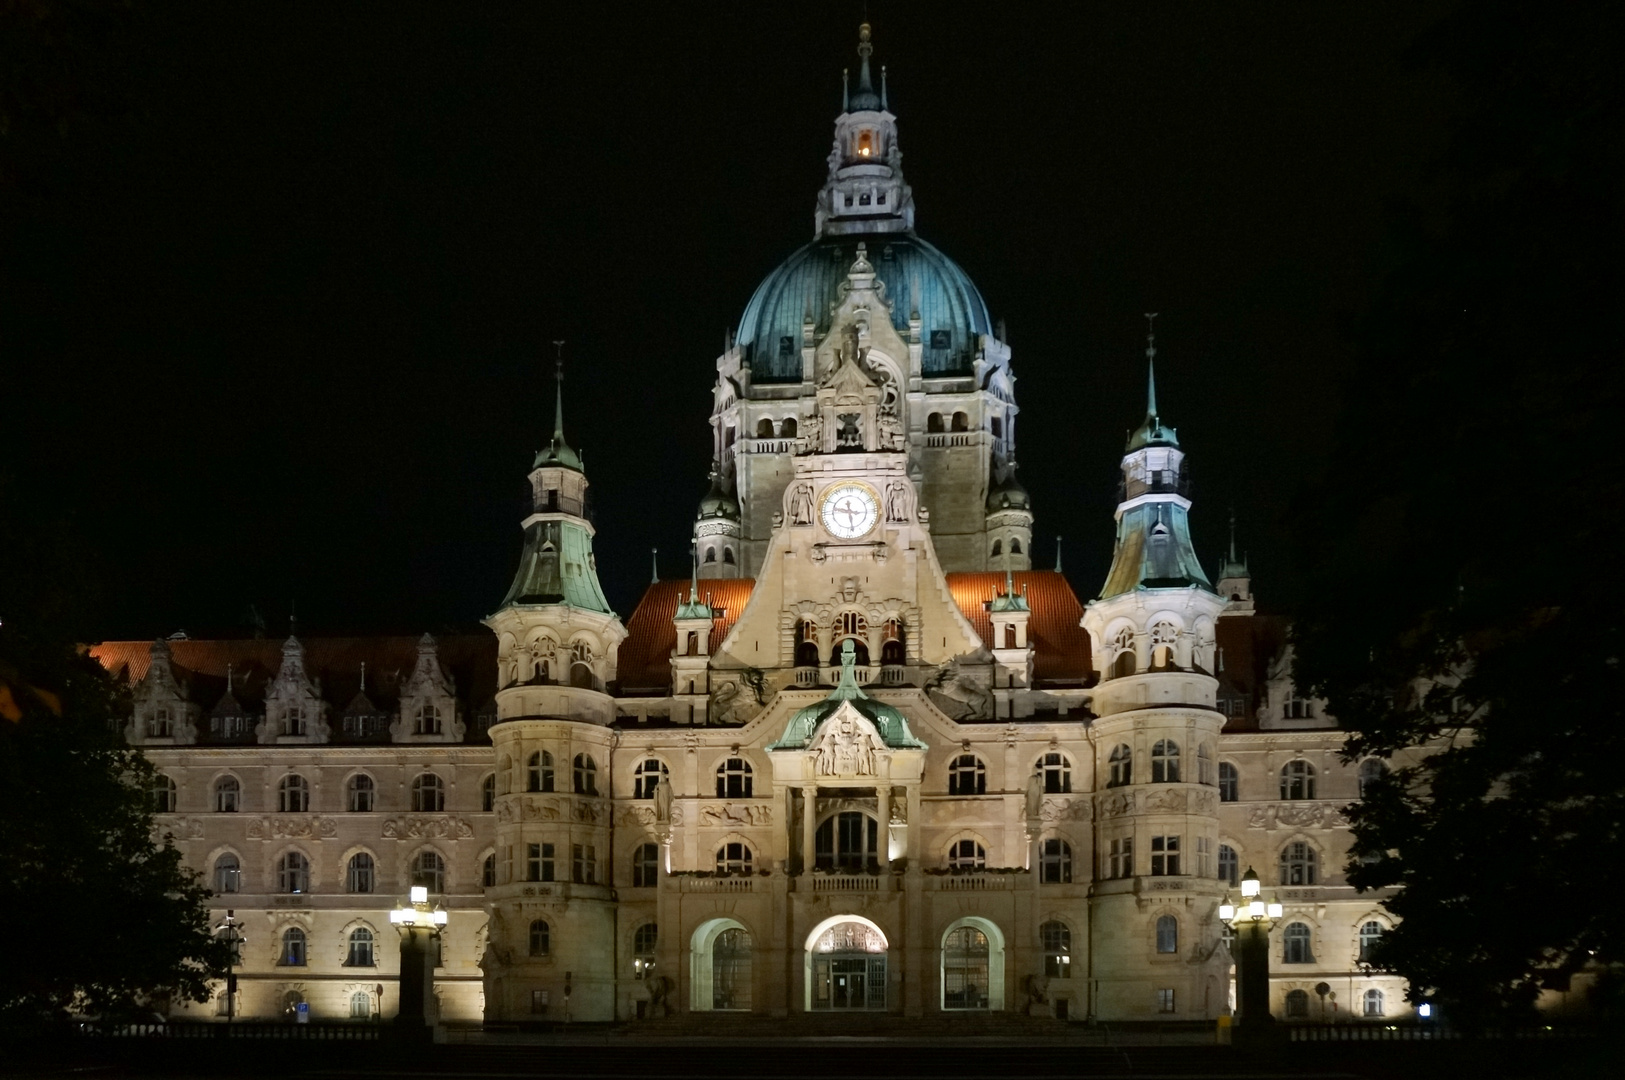 Neues Rathaus VII - Hannover